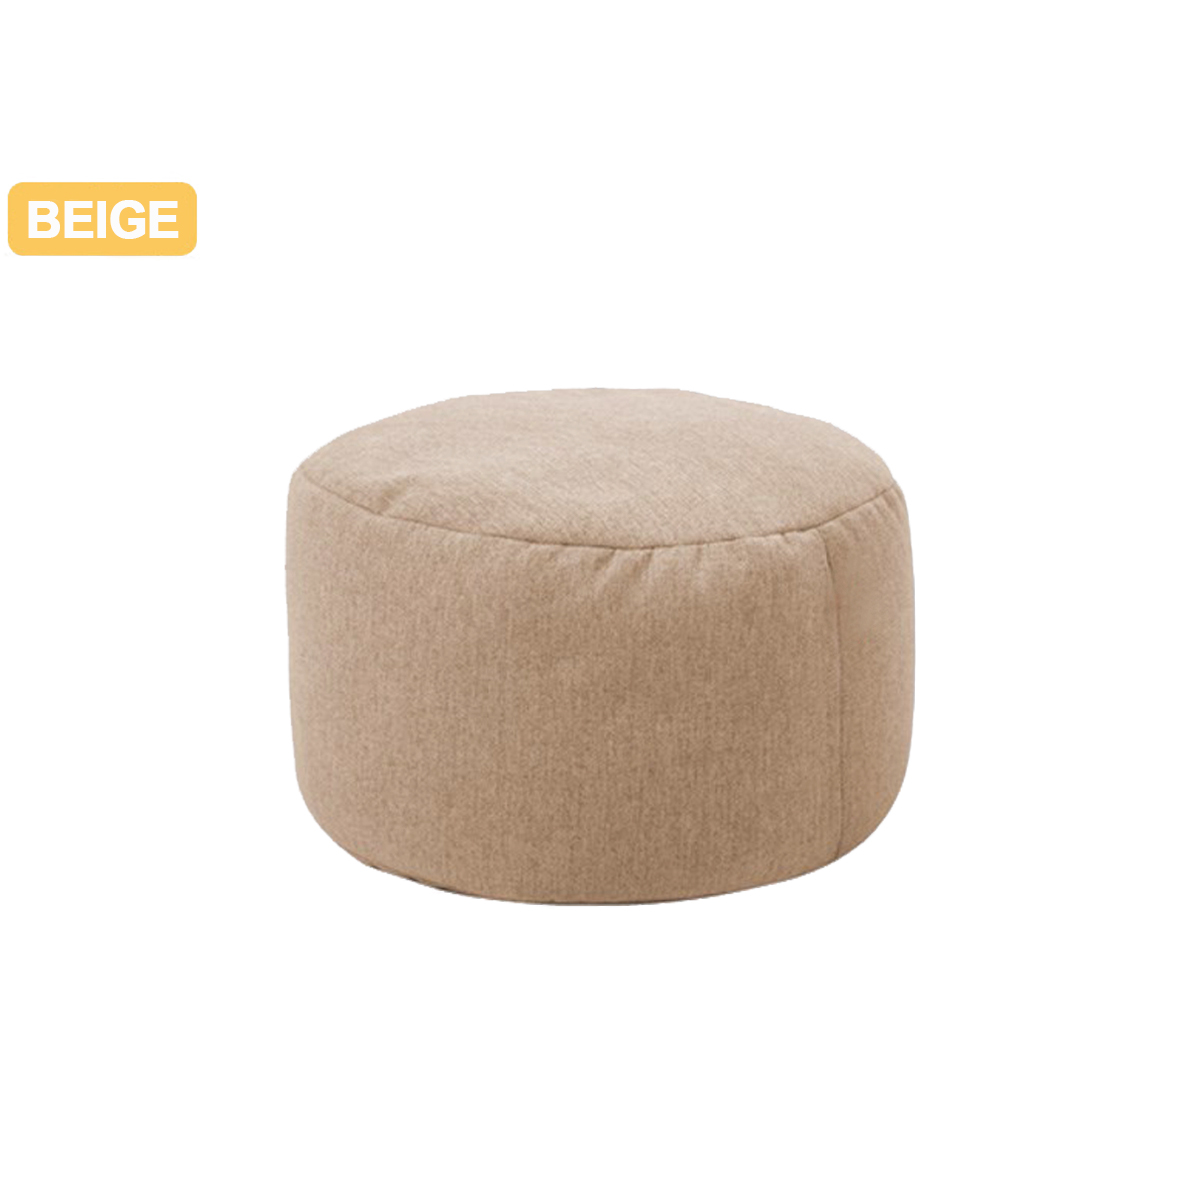 Astounding Us 4 37 34 Off Solid Color Chair Cover Beanbag Sofas Without Filler Small Round Lazy Beanbag Sofa Cover Waterproof Stuffed Storage Toy Bean Bag In Inzonedesignstudio Interior Chair Design Inzonedesignstudiocom